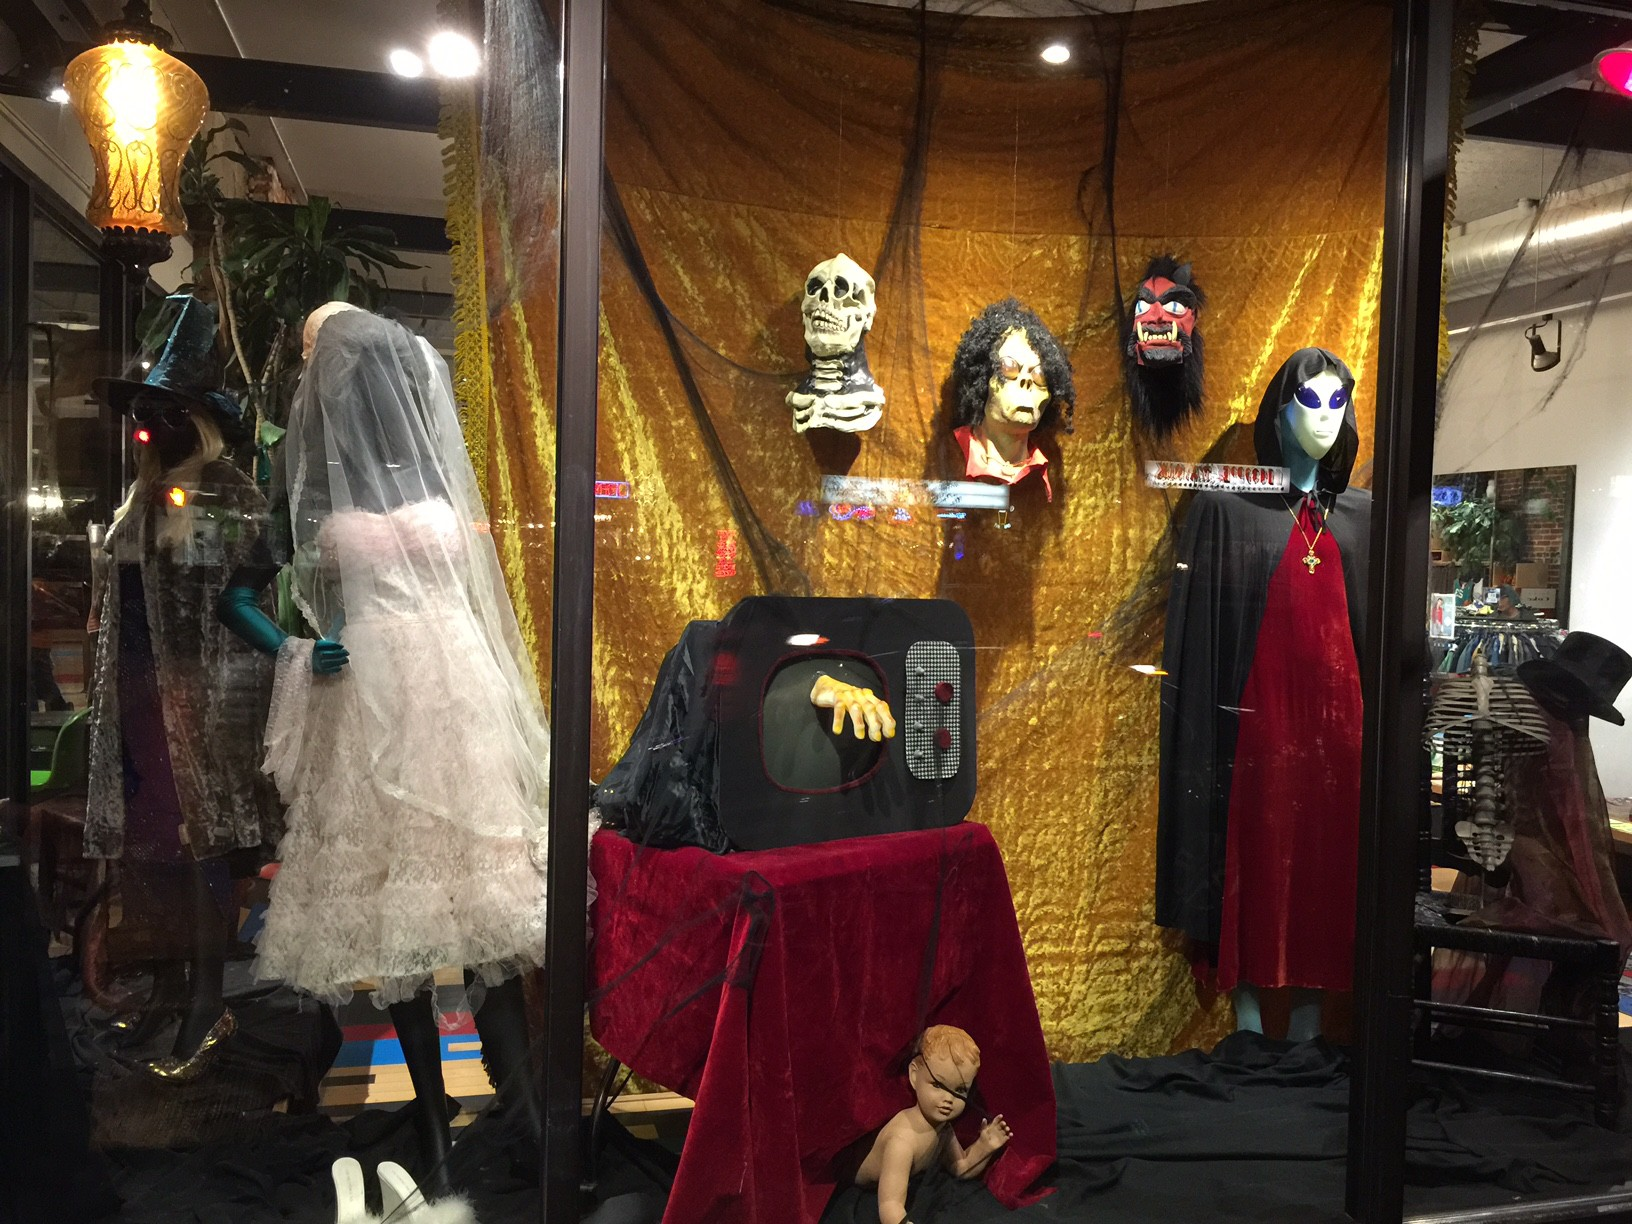 This golden curtain with hanging masks and a hand coming out from the tv, makes me think about a vintage style Halloween window display.